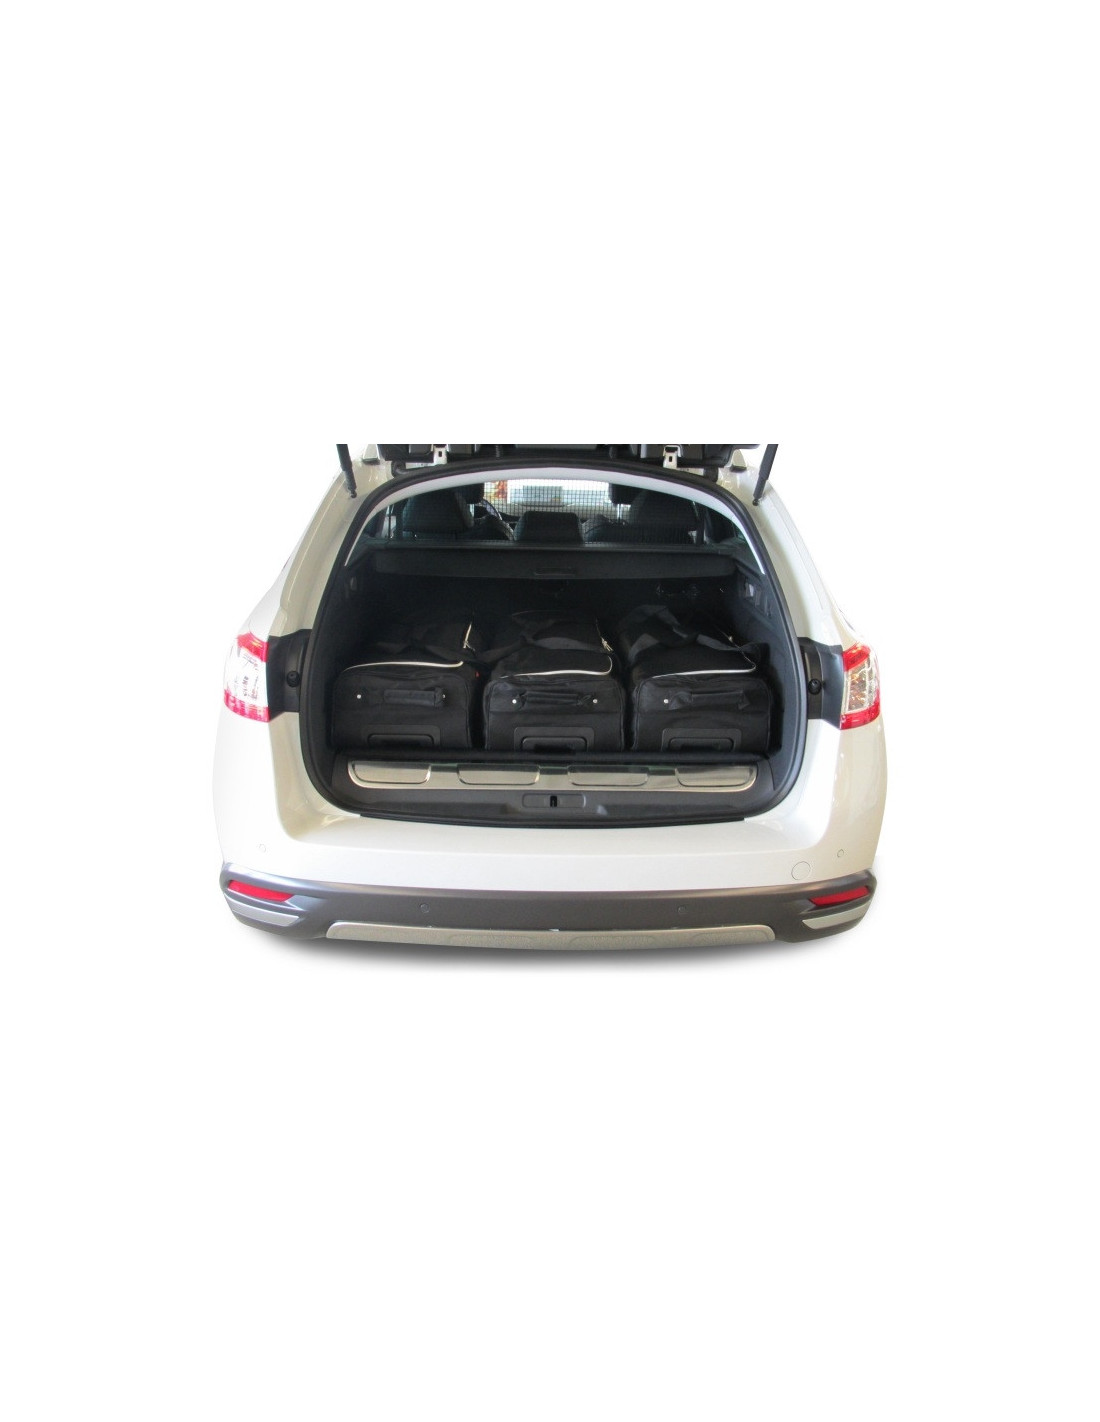 peugeot 508 rxh hybrid4 2012 car bags reistassenset. Black Bedroom Furniture Sets. Home Design Ideas